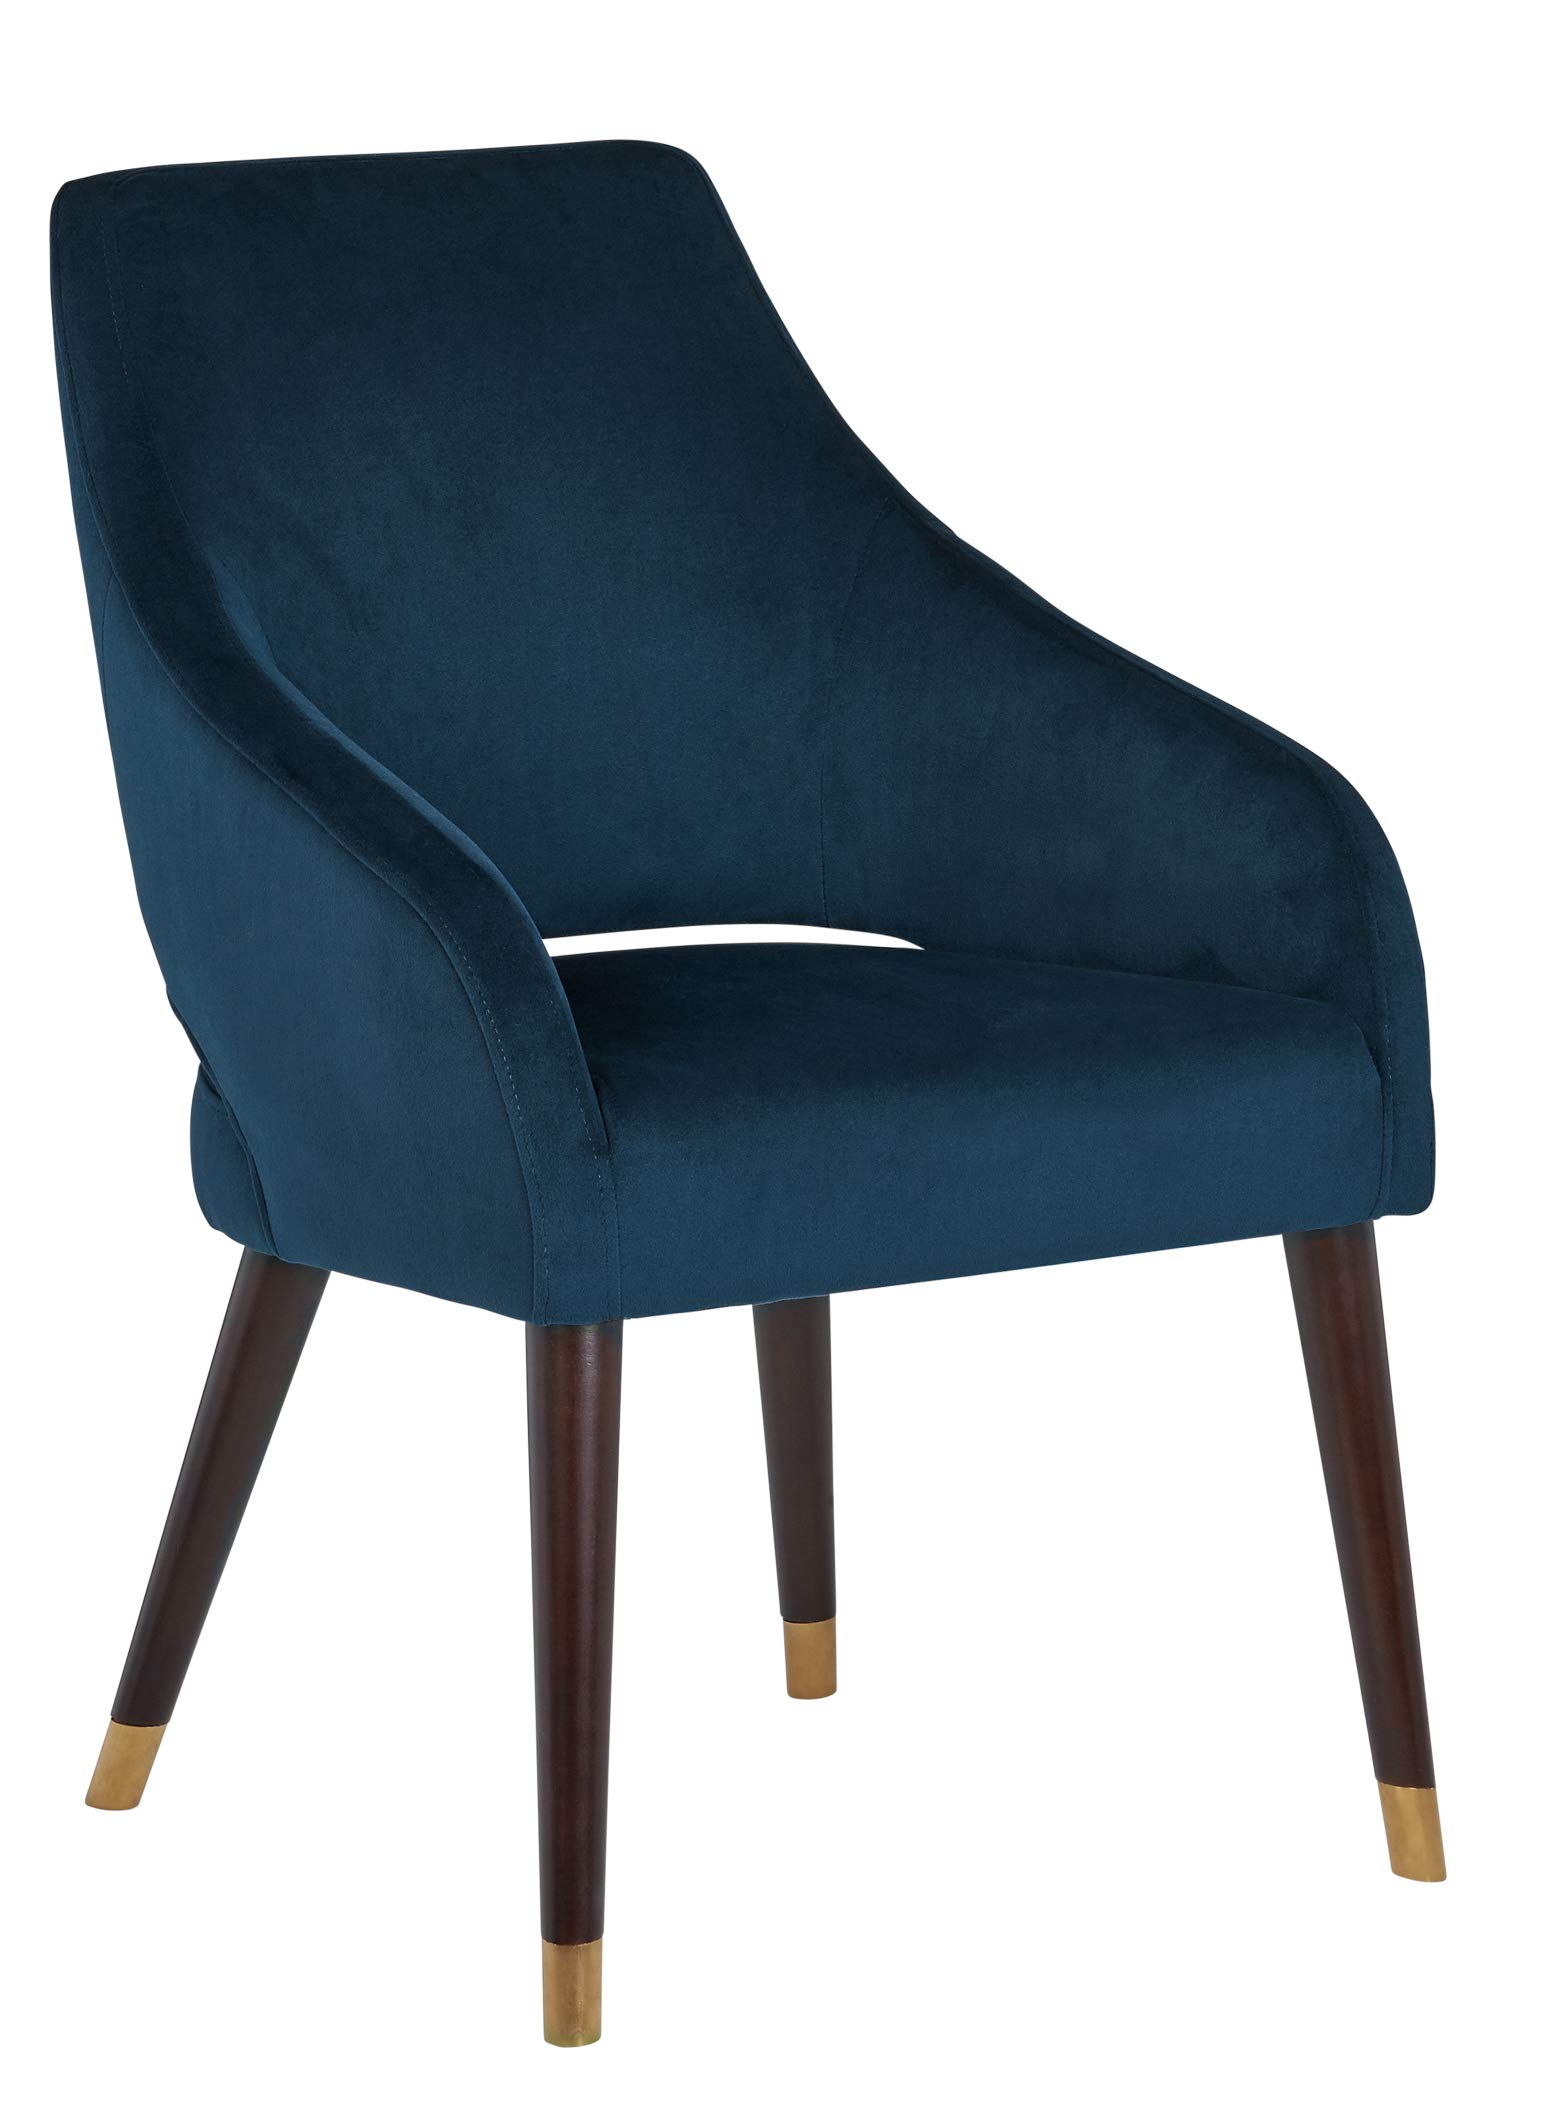 "Rivet Fir Mid-Century Velvet Modern Dining Kitchen Chair, 35 Inch Height, Blue - This velvet chair will bring mid-century modern flair to your dining room. Sloping low-profile arms, the open space in the lower back, and tapered wooden legs are hallmarks of retro style, while the gold foot caps and rich colors add glam effects. 23.6""W x 24.8""D x 35.4""H; Seat Height: 19.2""H ; Seat Depth: 17.7""D; Seat Back Height: 15.7""H; Arm Height: 23.2""H Velvet upholstery on wood frame and legs - kitchen-dining-room-furniture, kitchen-dining-room, kitchen-dining-room-chairs - 71BzGtO2CML -"